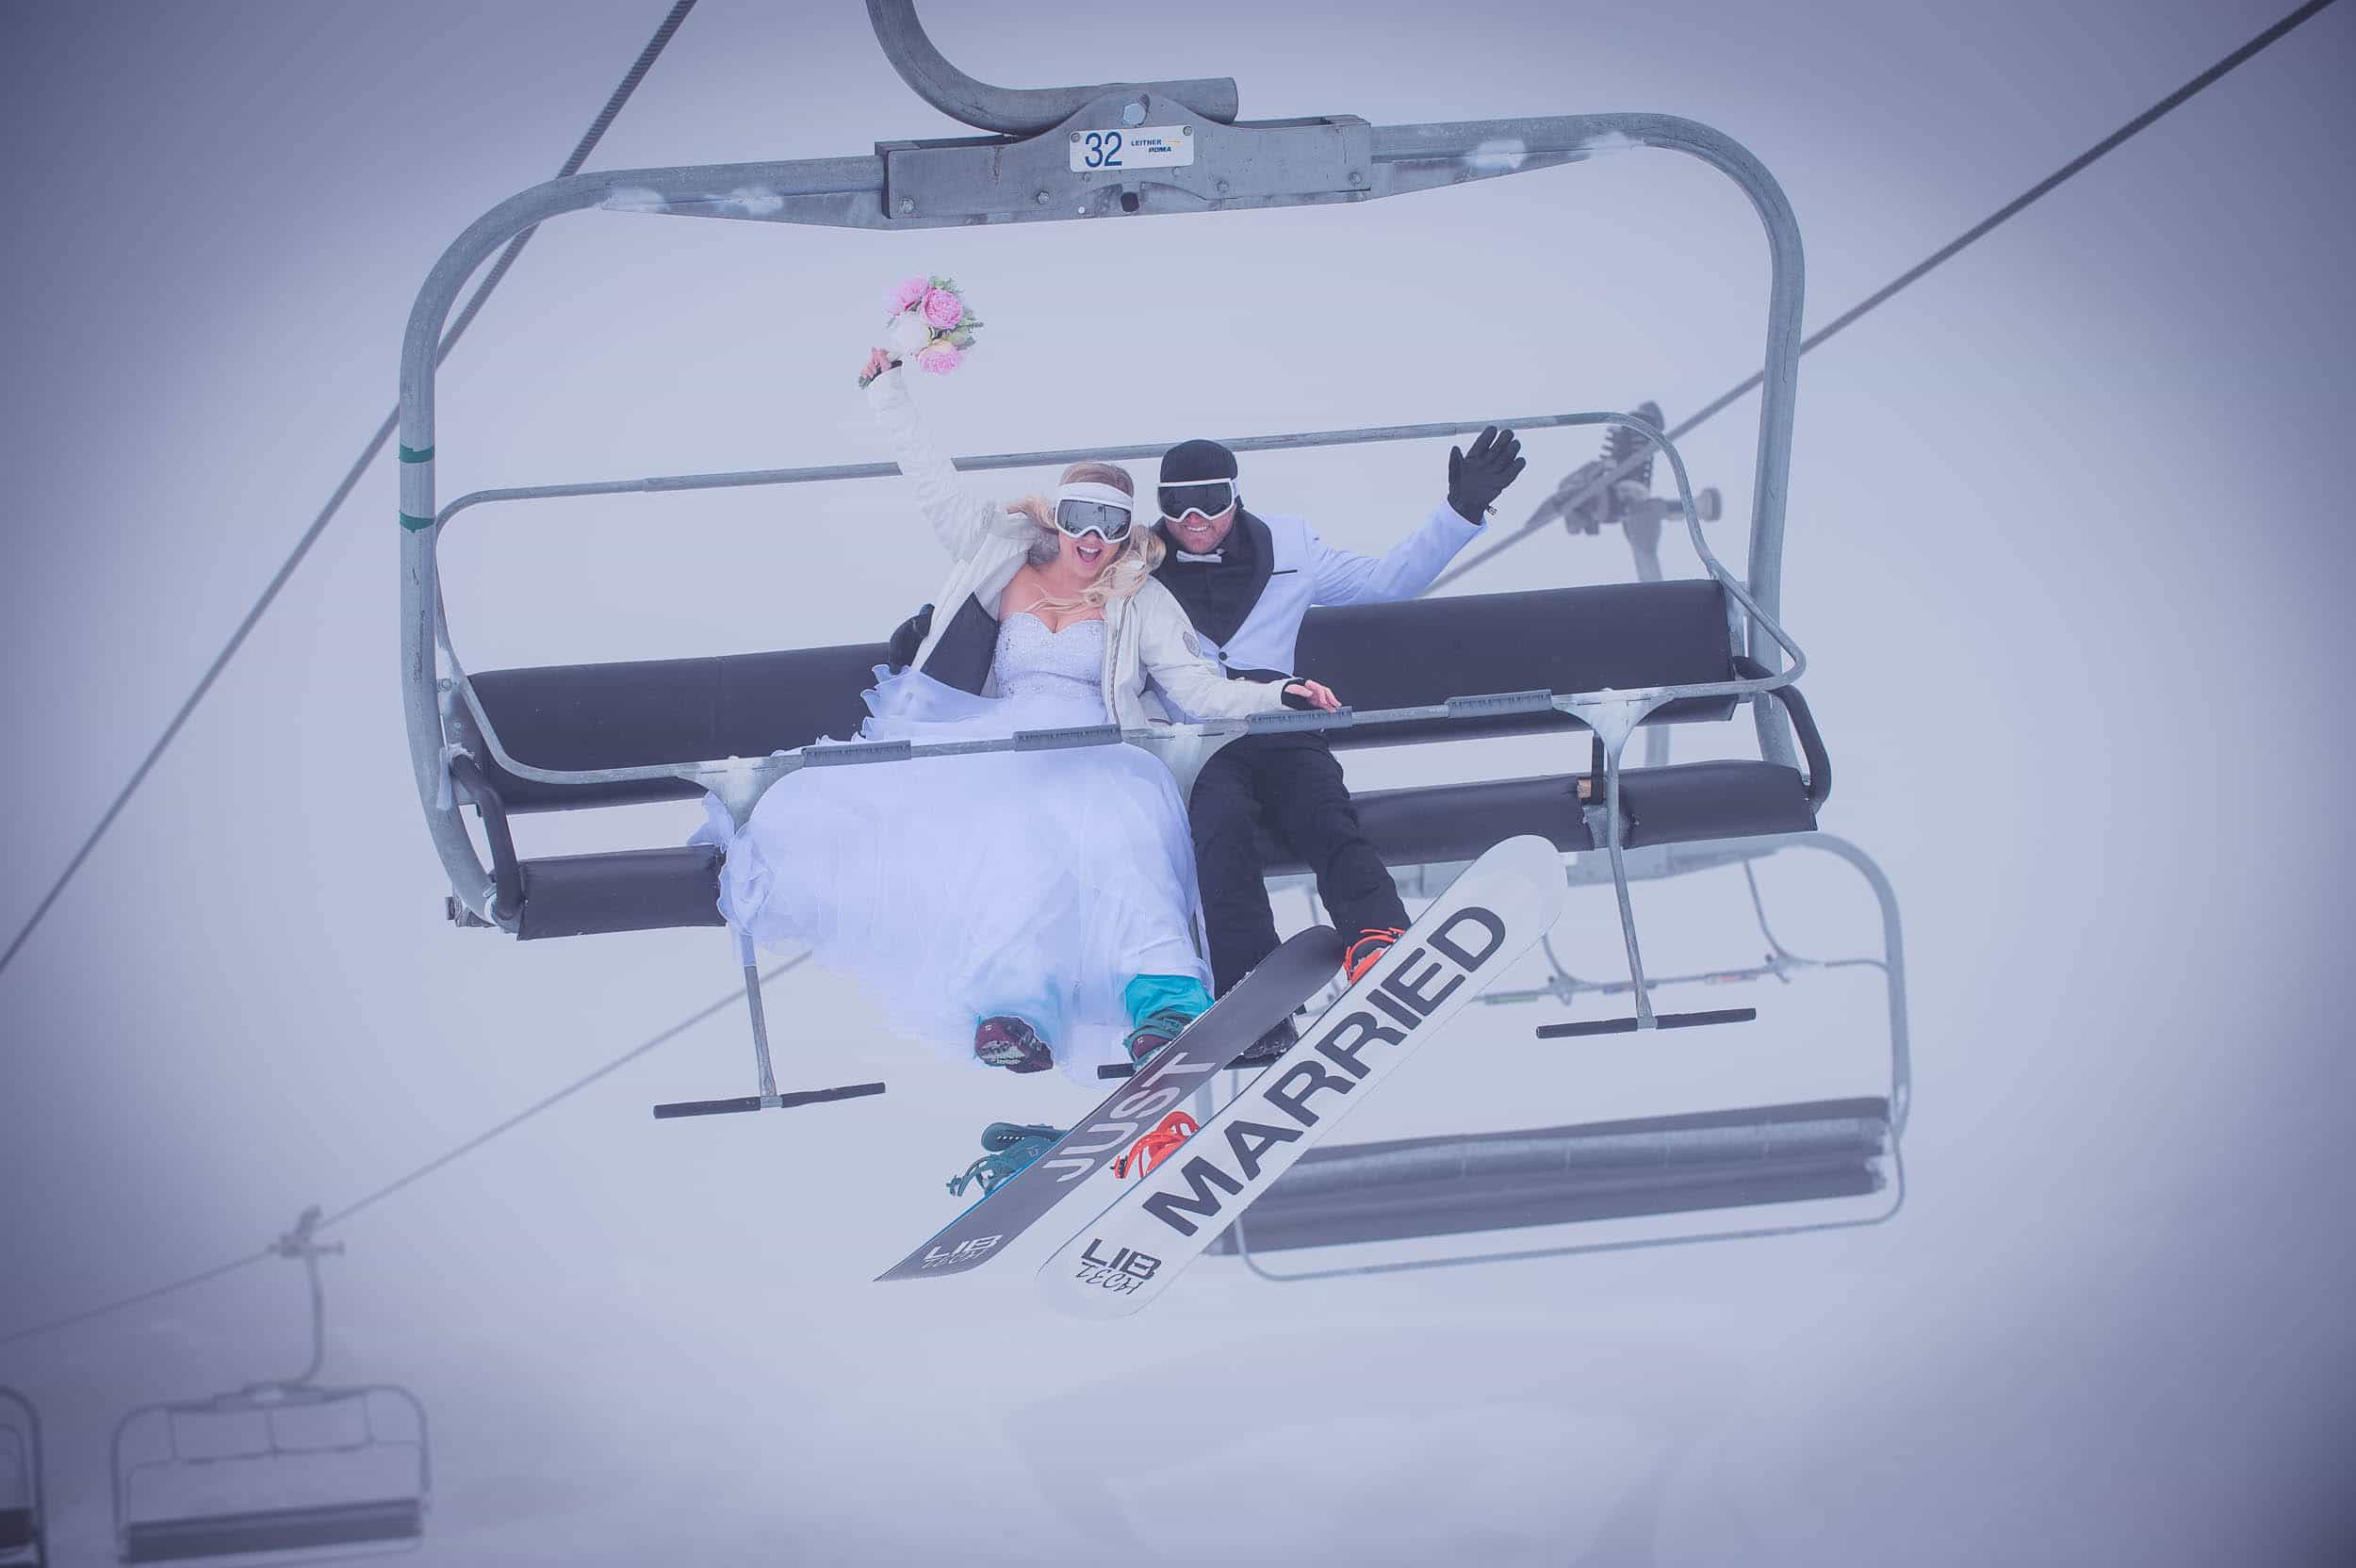 Now this is what I call a Queenstown Winter Wedding!! At Coronet Peak...on snowboards...in a snow storm!! fallon photography EPIC Queenstown Winter Wedding